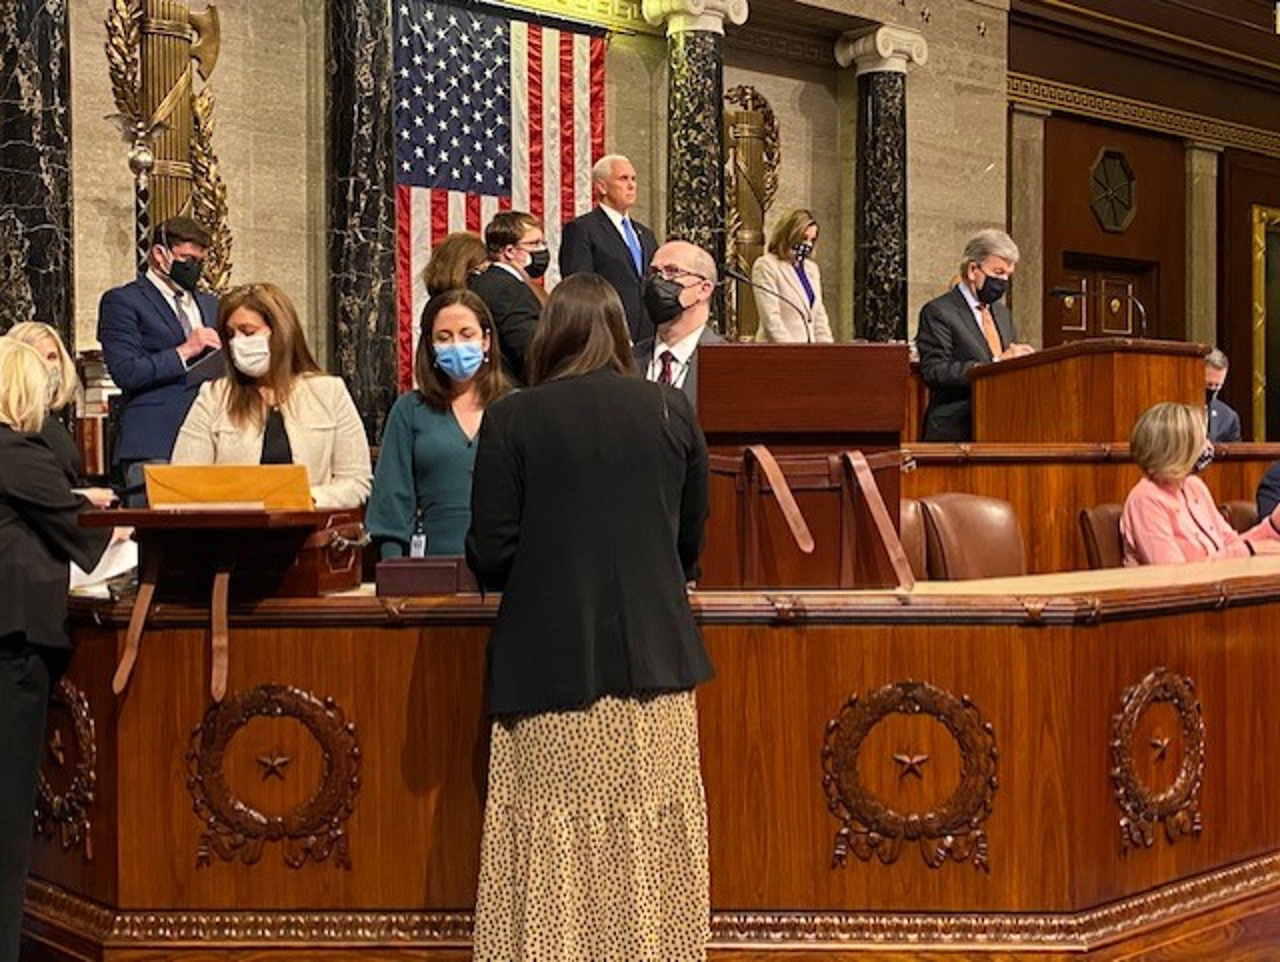 Jim Costa photo, Electoral Vote Certification from House chambers